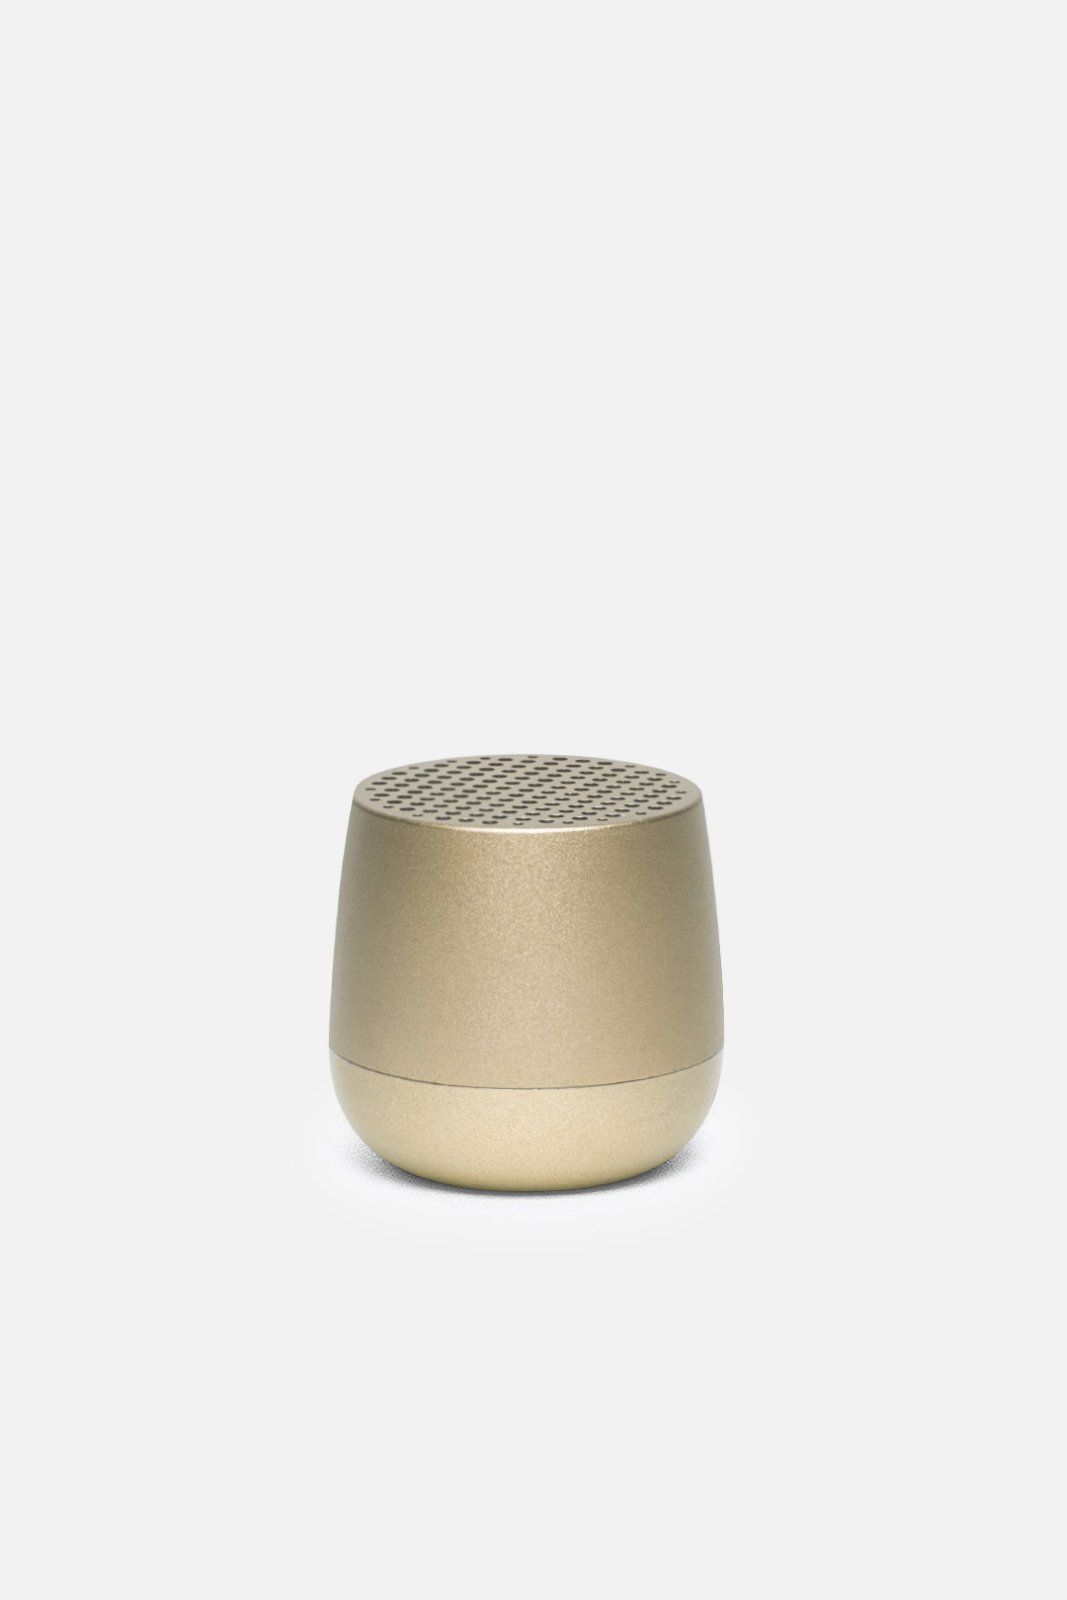 Lexon Mino Speaker in Gold | Bandier